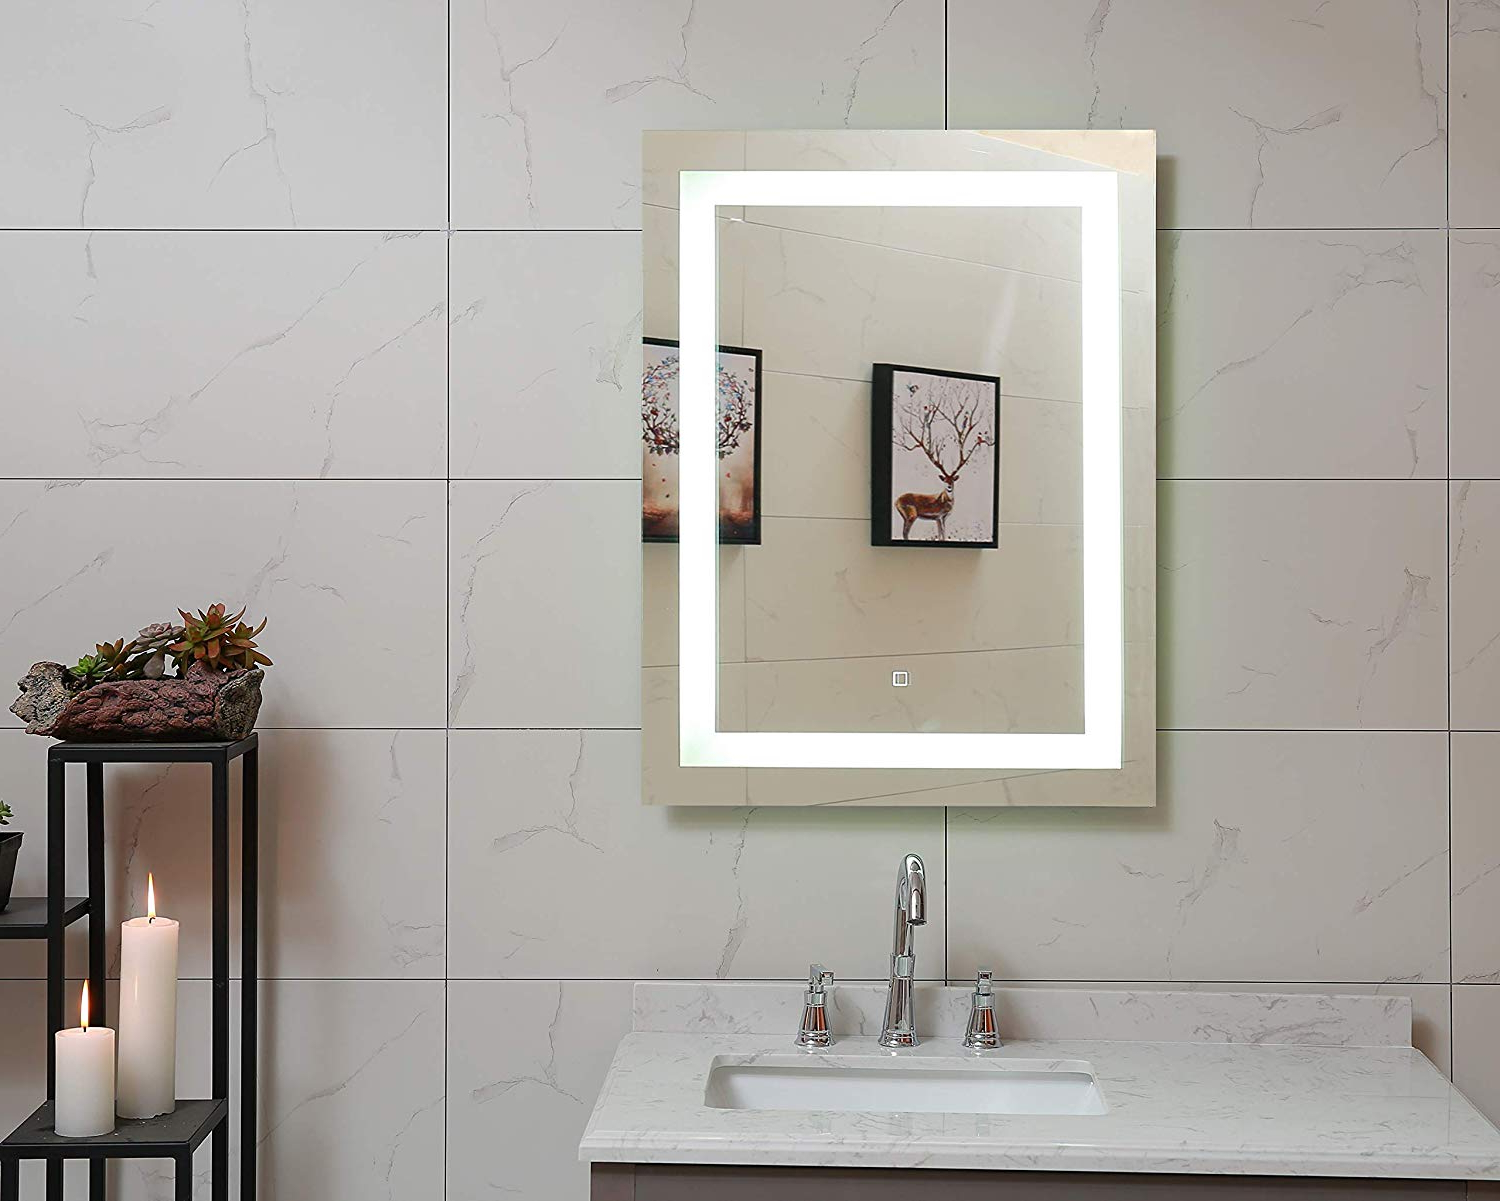 Recent Lighted Wall Mirrors For Bathrooms With Regard To 24x30 Inch Led Lighted Bathroom Mirror With Dimmable Touch Switch (gs099h 2430)(24x30 Inch) (View 12 of 20)